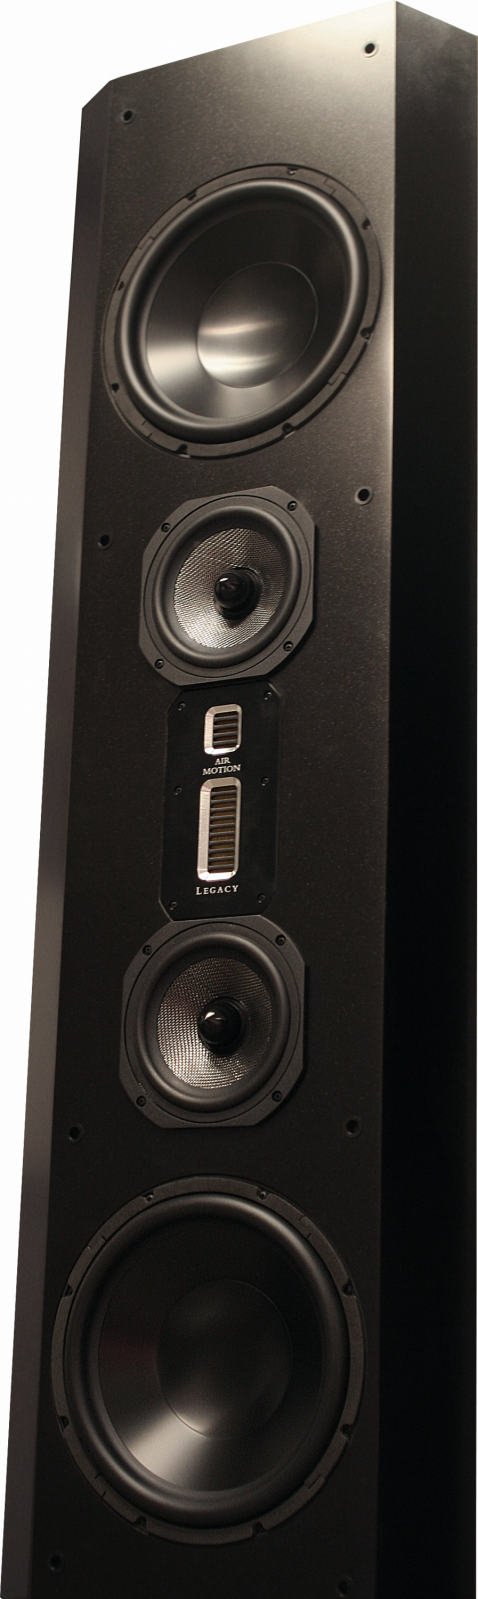 Legacy-Pro-Audio-Theater-Tower-upward.png